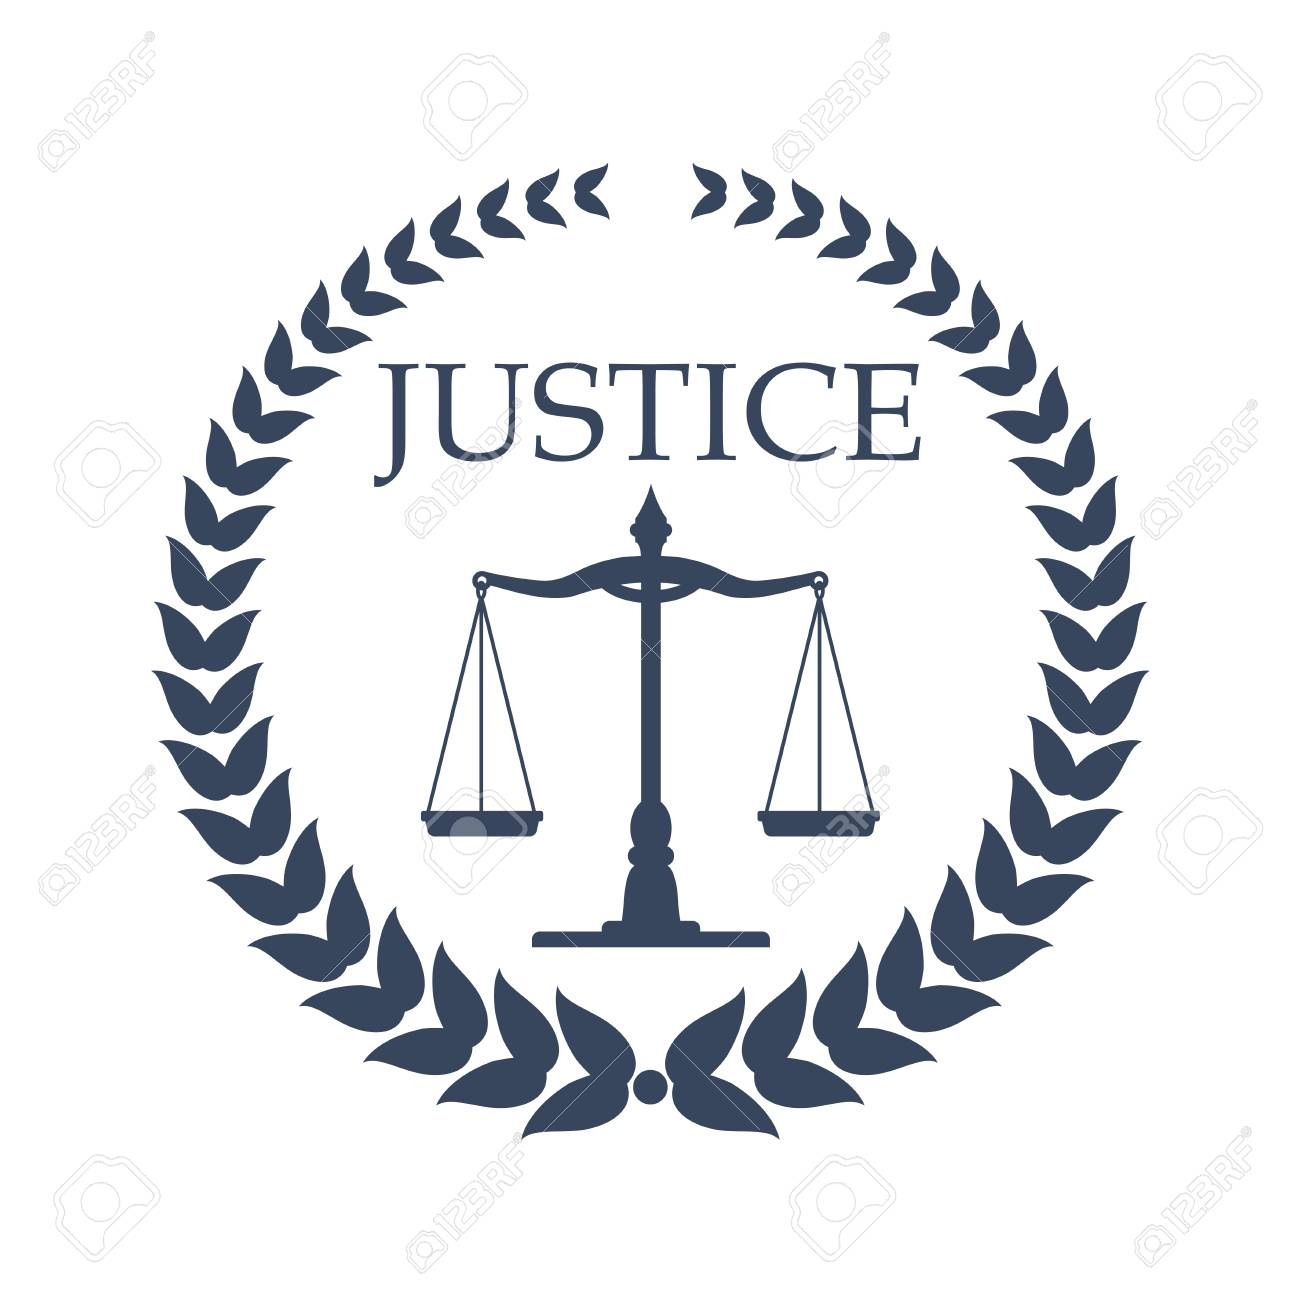 Law firm, lawyer or law office symbol. Scales of justice, framed by heraldic laurel wreath. Lawyer card, law firm logo, legal center emblem design - 71509494